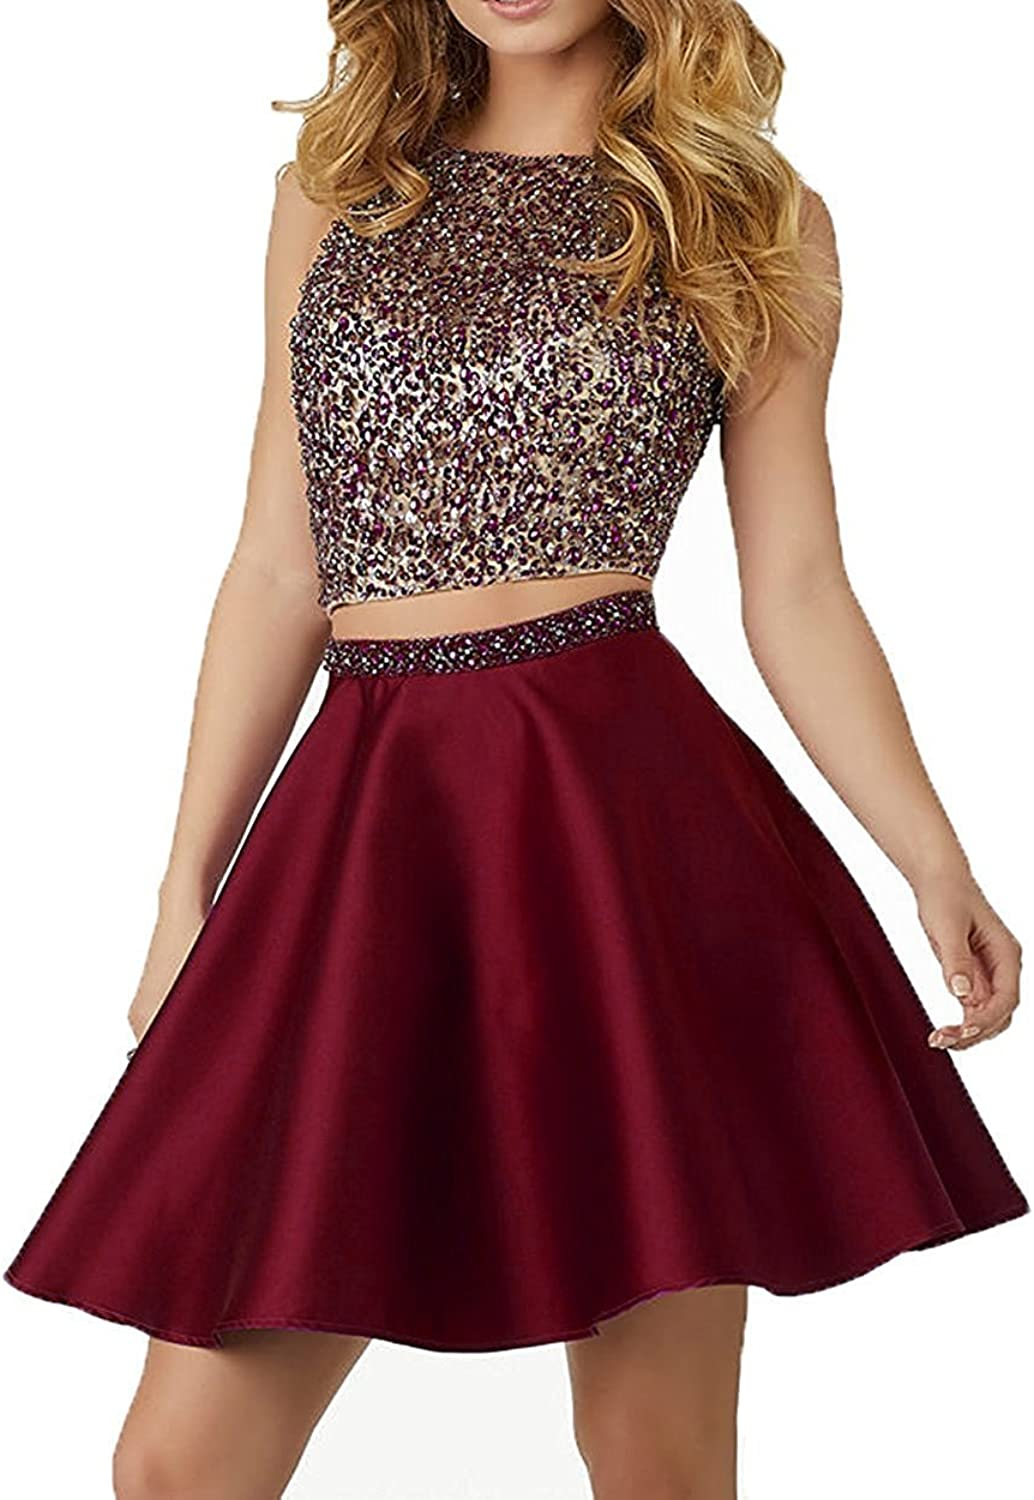 SULIDI Two Piece Beaded Short Open Back Homecoming Dress 13